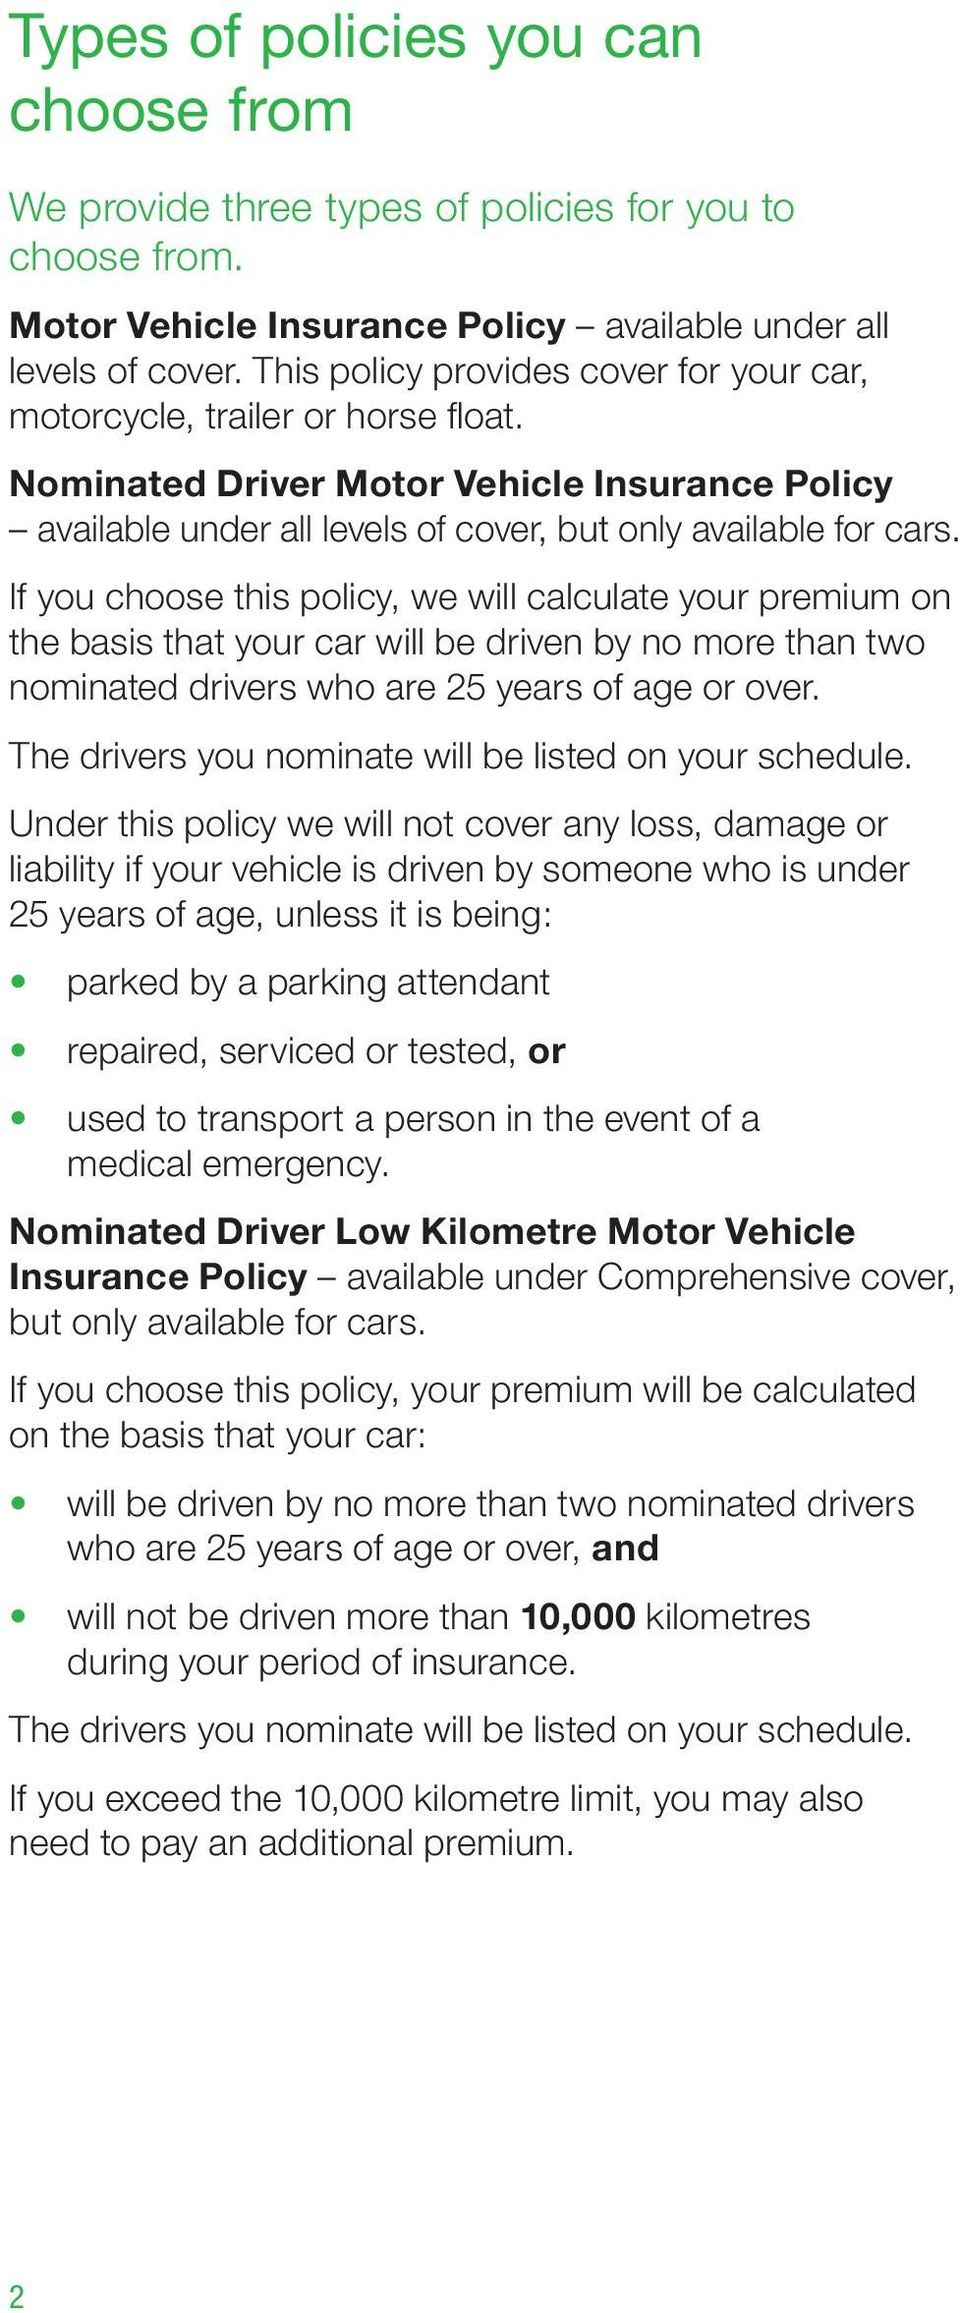 If you choose this policy, we will calculate your premium on the basis that your car will be driven by no more than two nominated drivers who are 25 years of age or over.